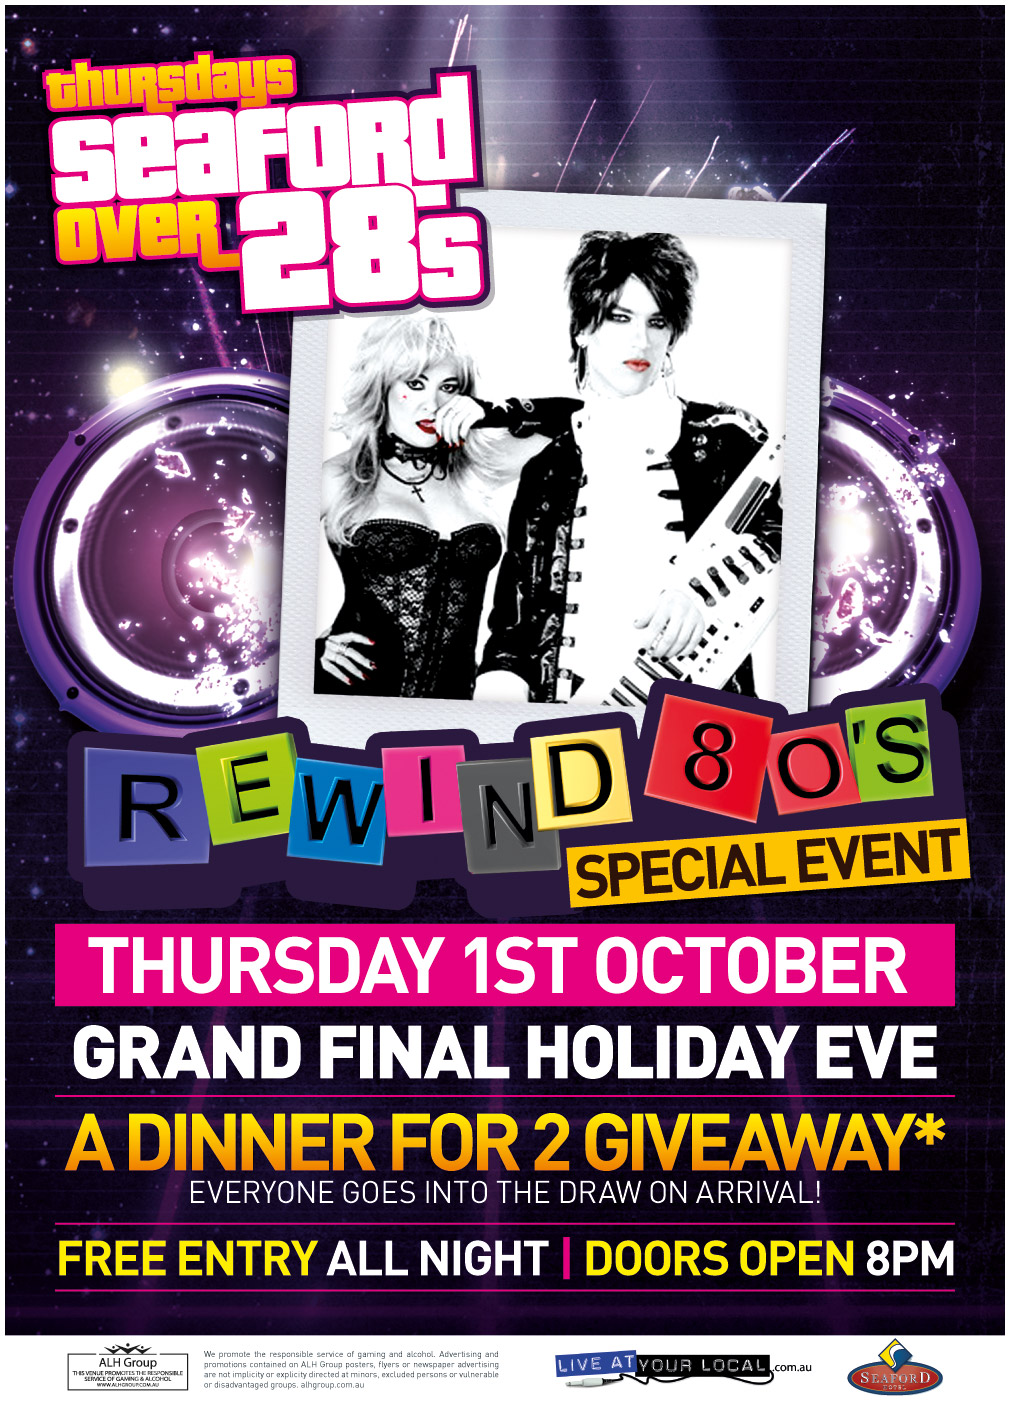 SEAFORD-28s-GRAND FINAL HOLIDAY EVE